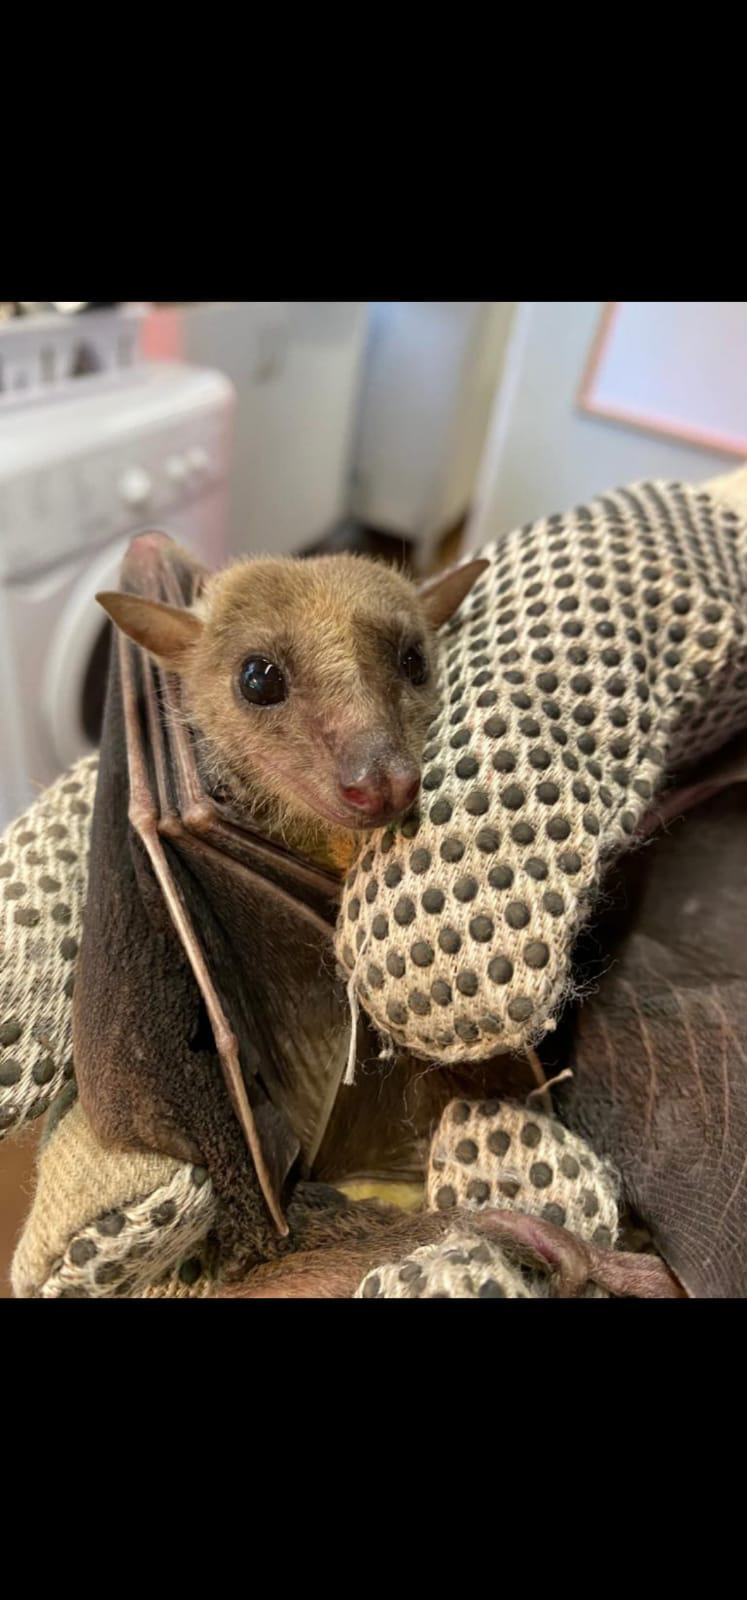 eff the Egyptian fruit bat recovering after treatment